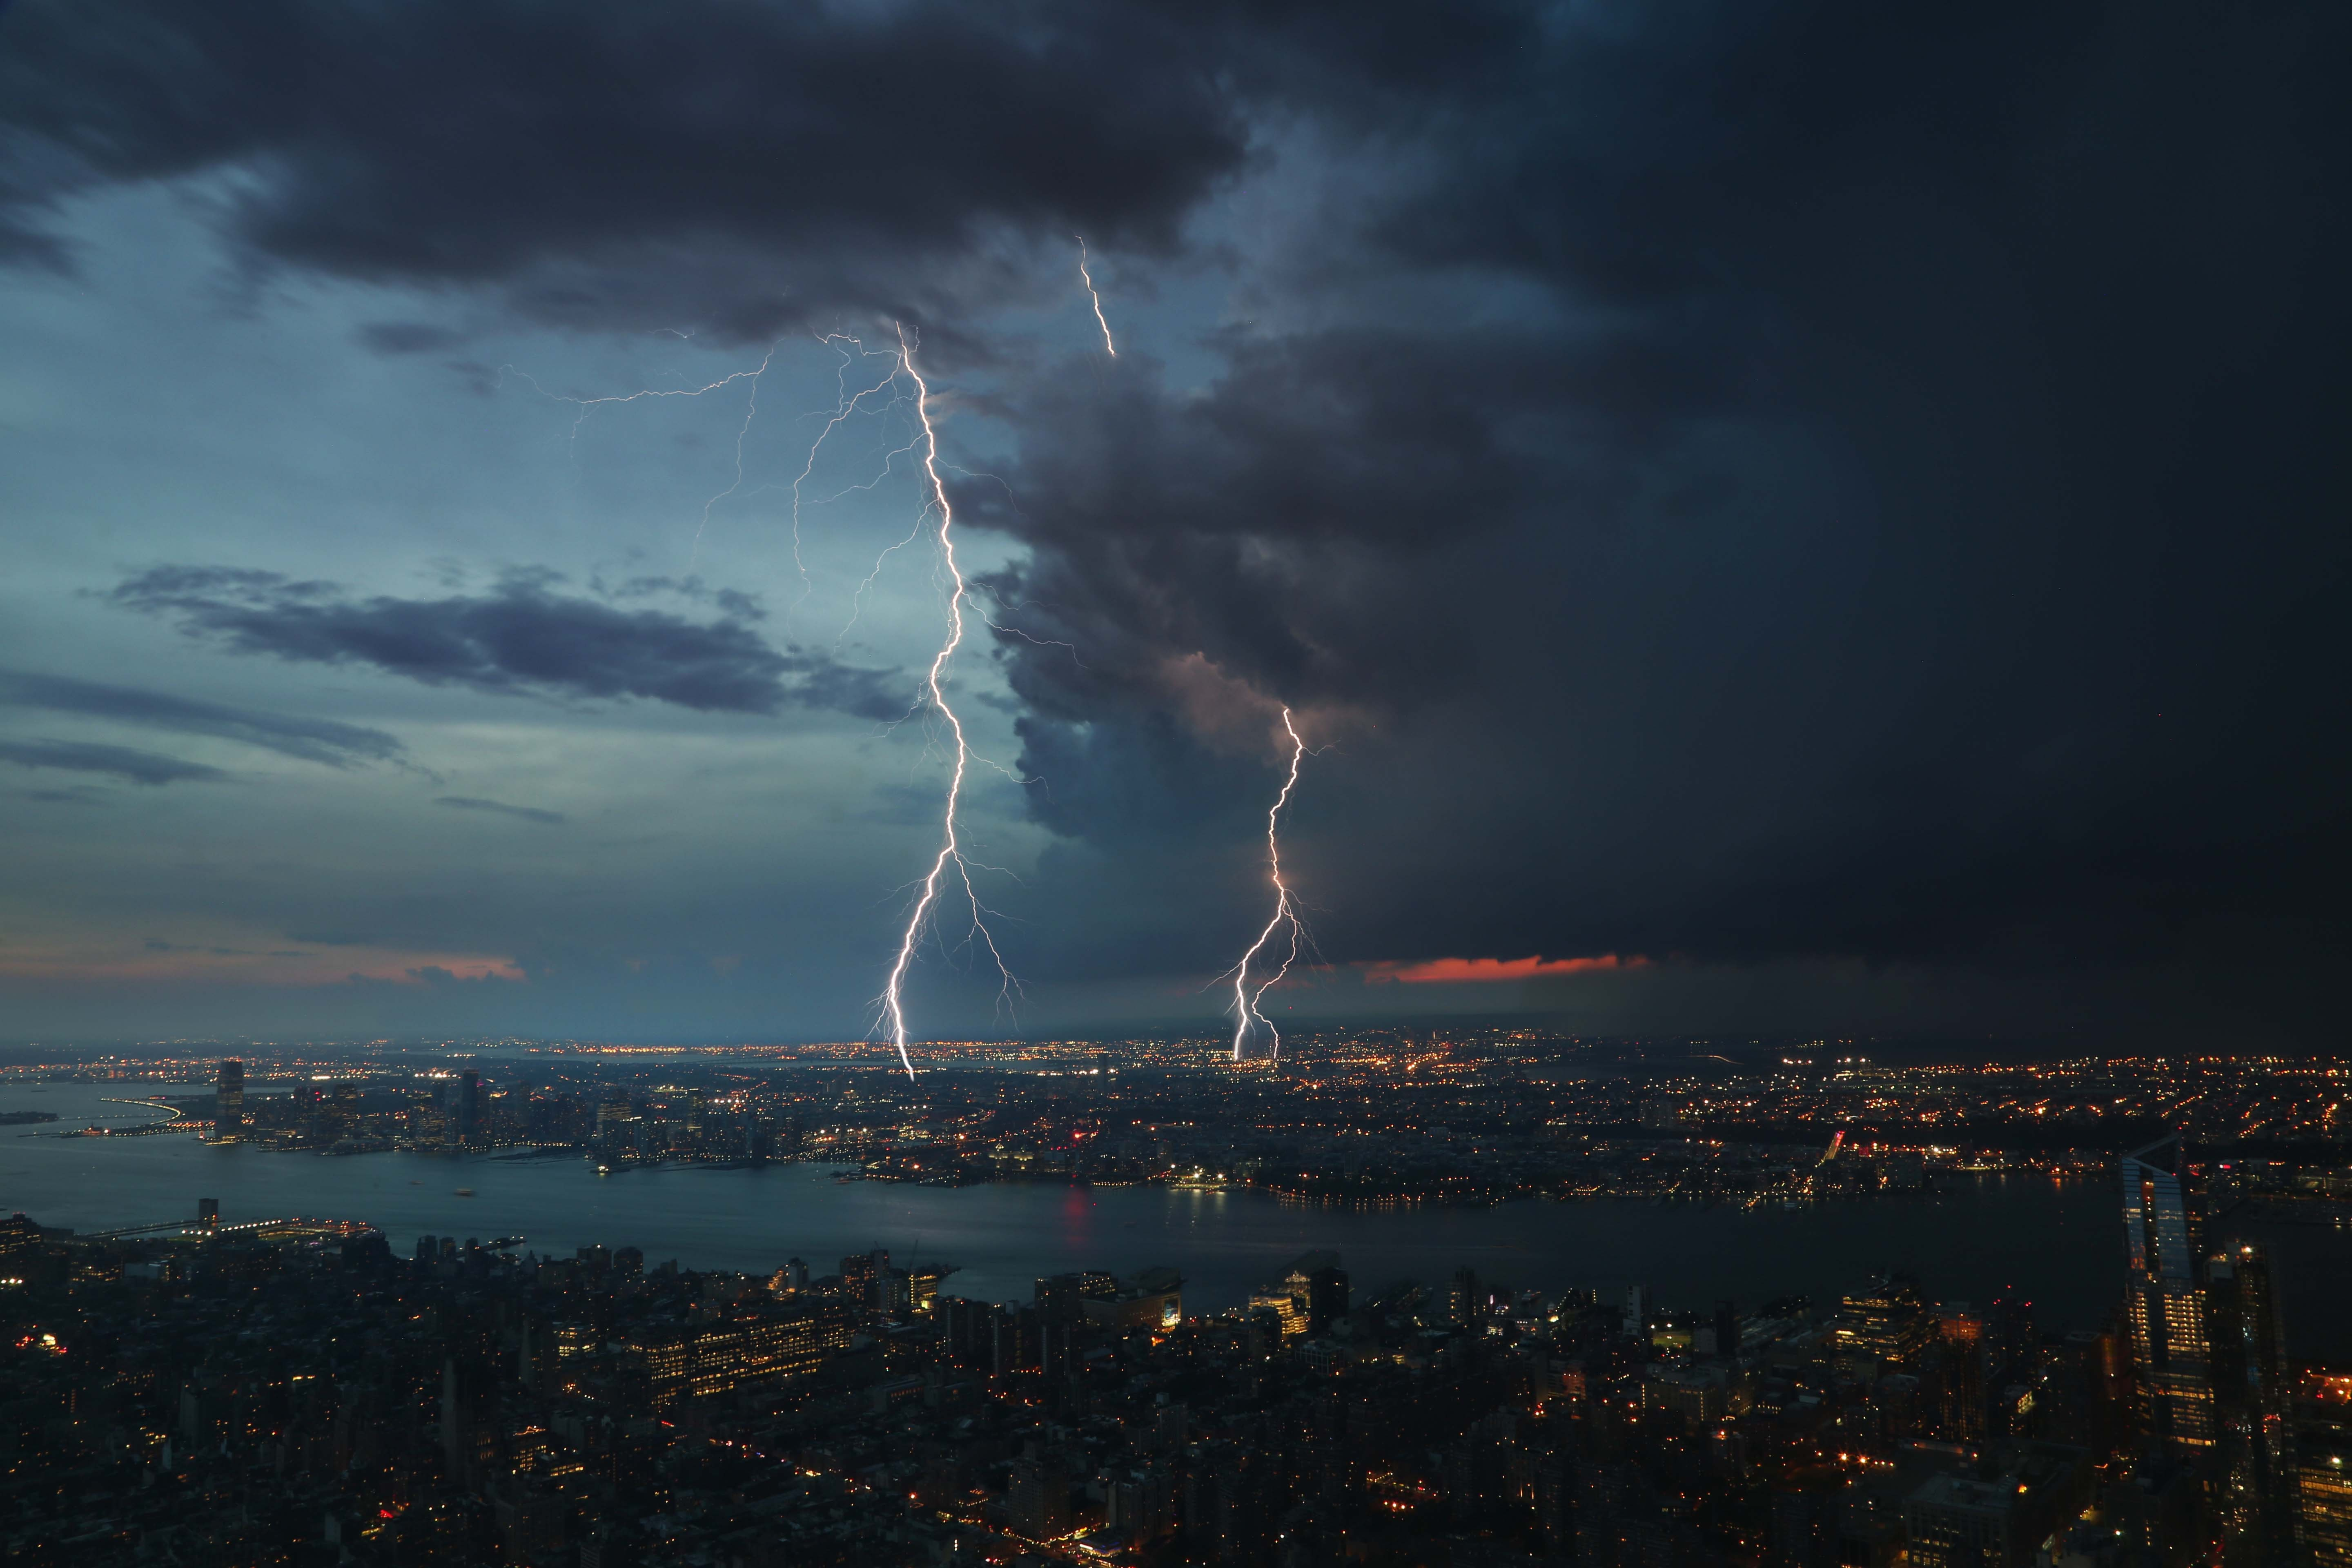 How to Photograph Lightning with a Cell Phone